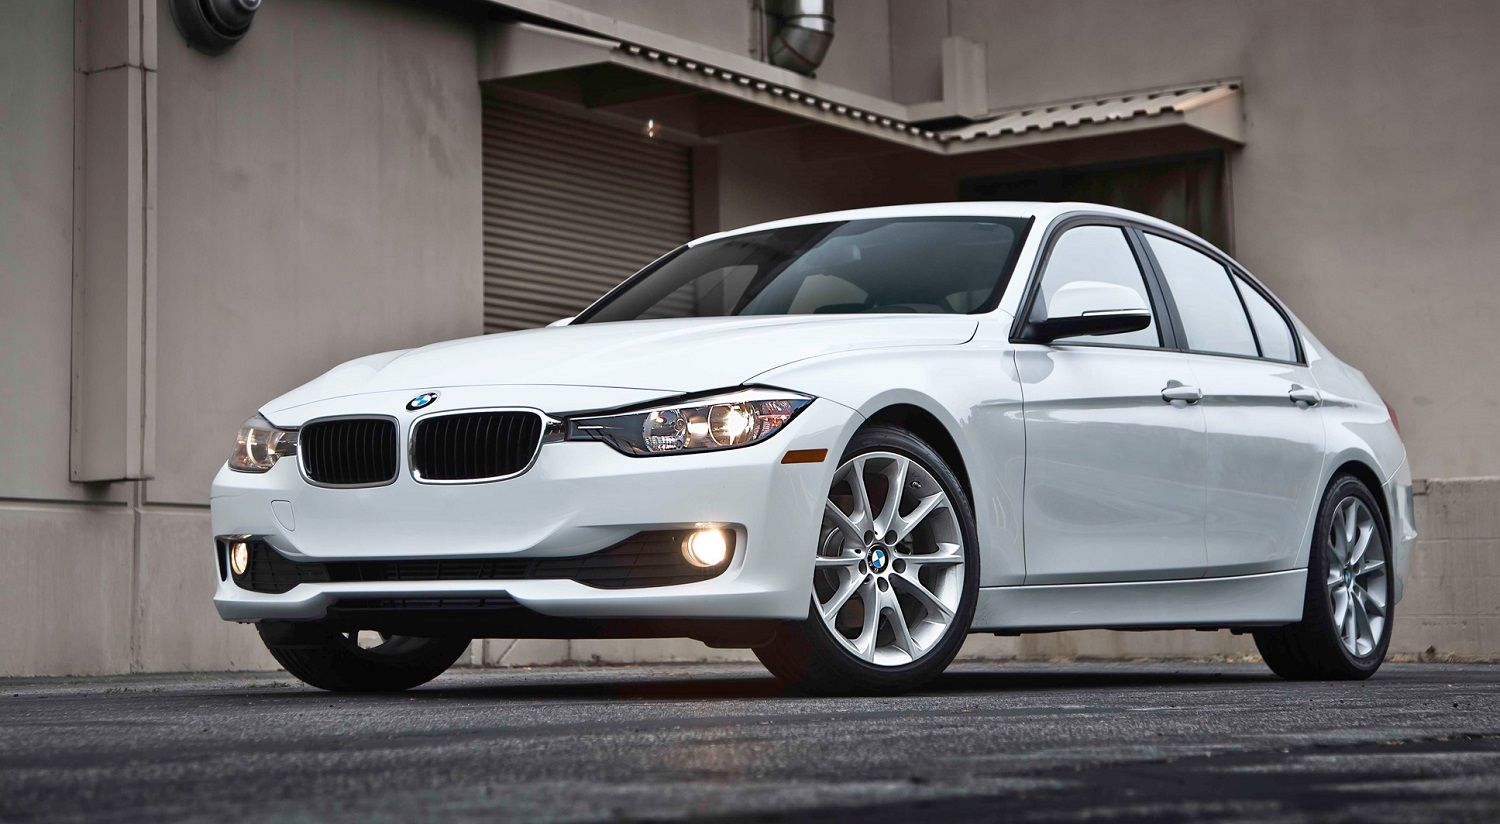 Great Prices On BMW 320i Sports Cars For Sale #BMW320i